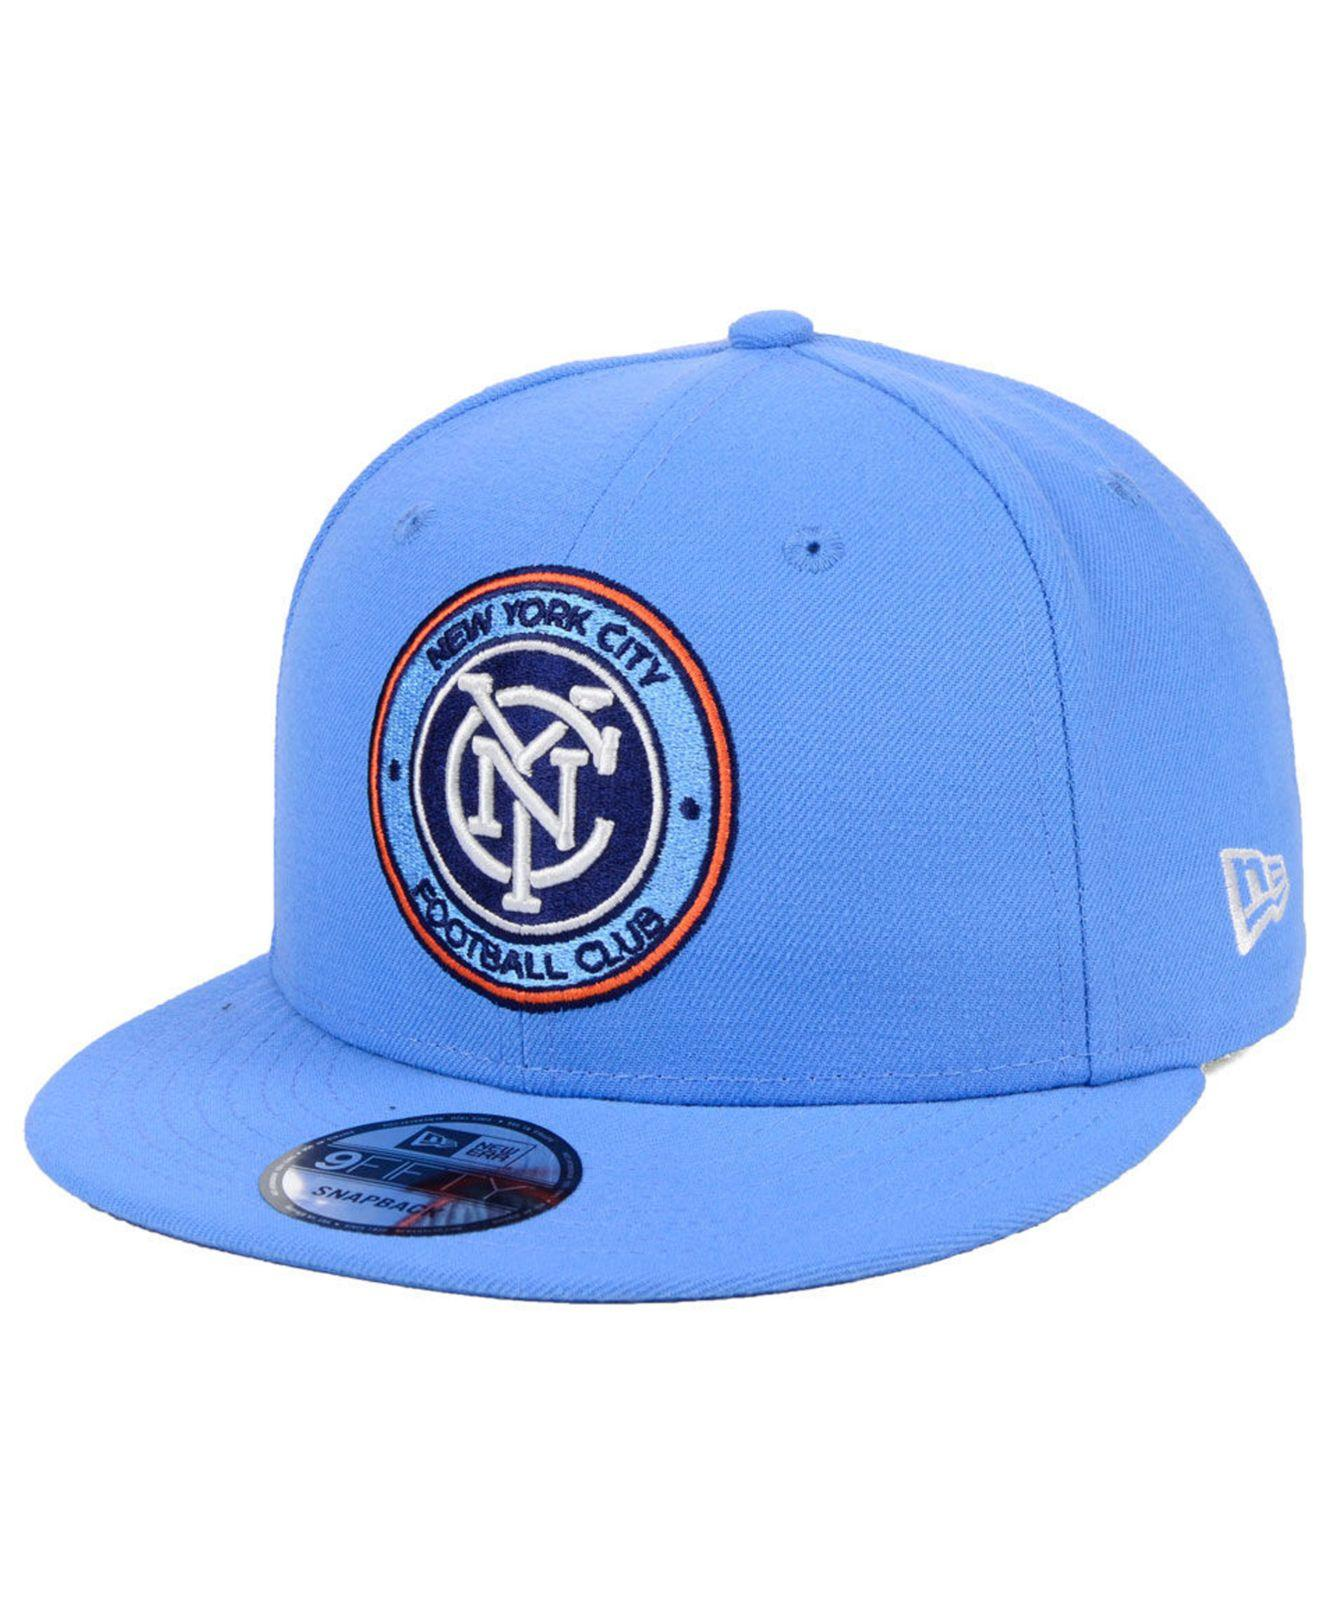 4ee6079b27b04 Lyst - KTZ New York City Fc Core 9fifty Snapback Cap in Blue for Men